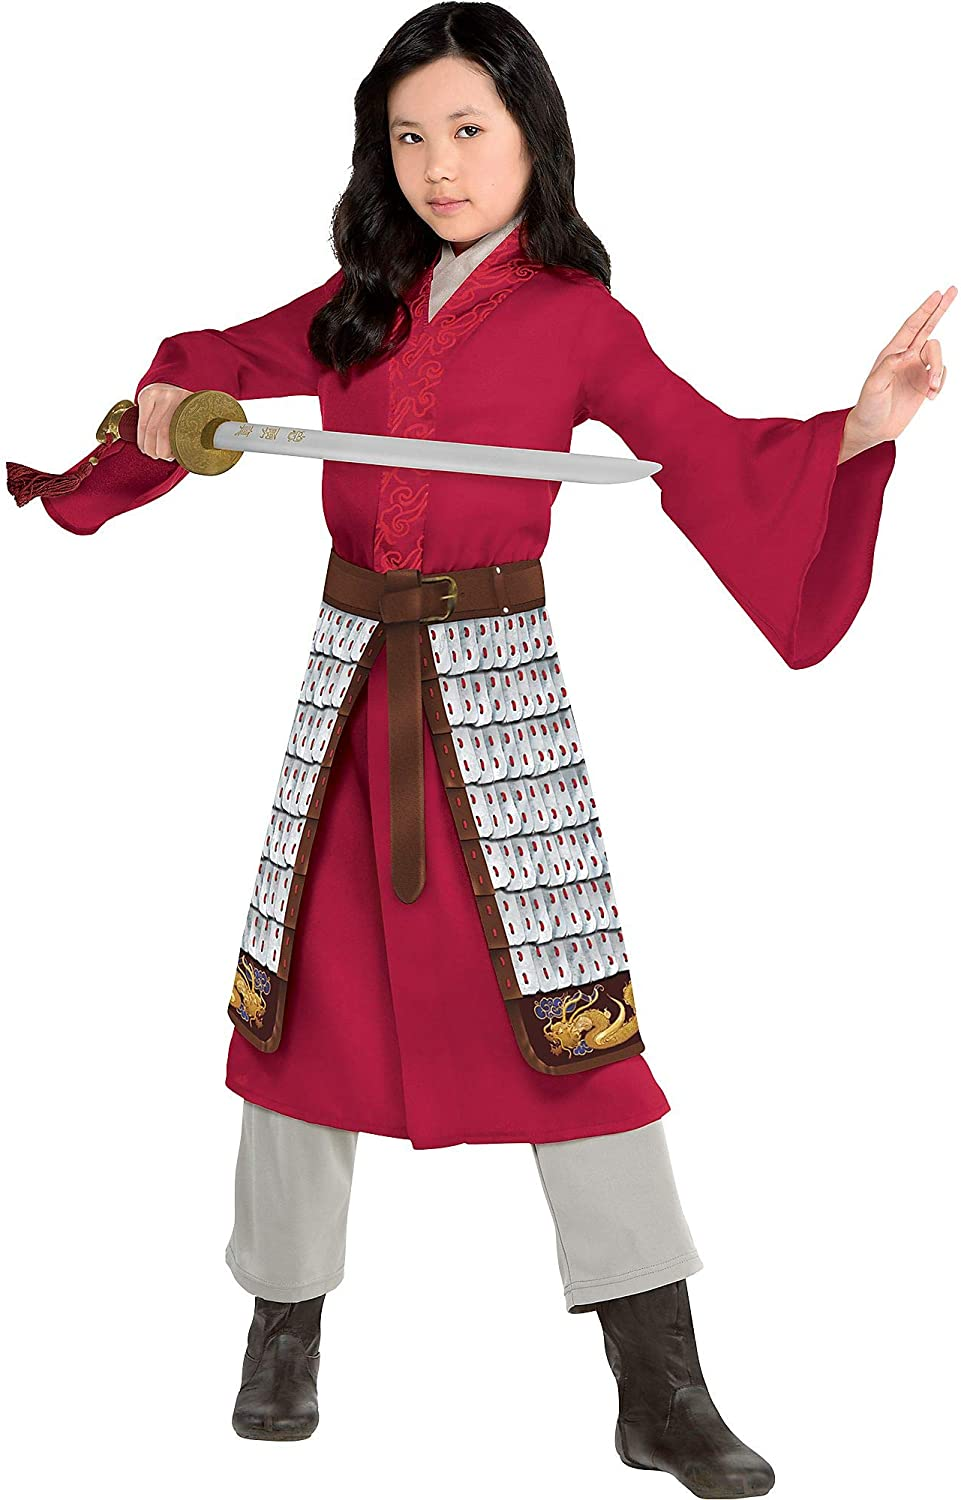 Disney Mulan Halloween Costume for Toddlers, Dress, Pants and Skirt